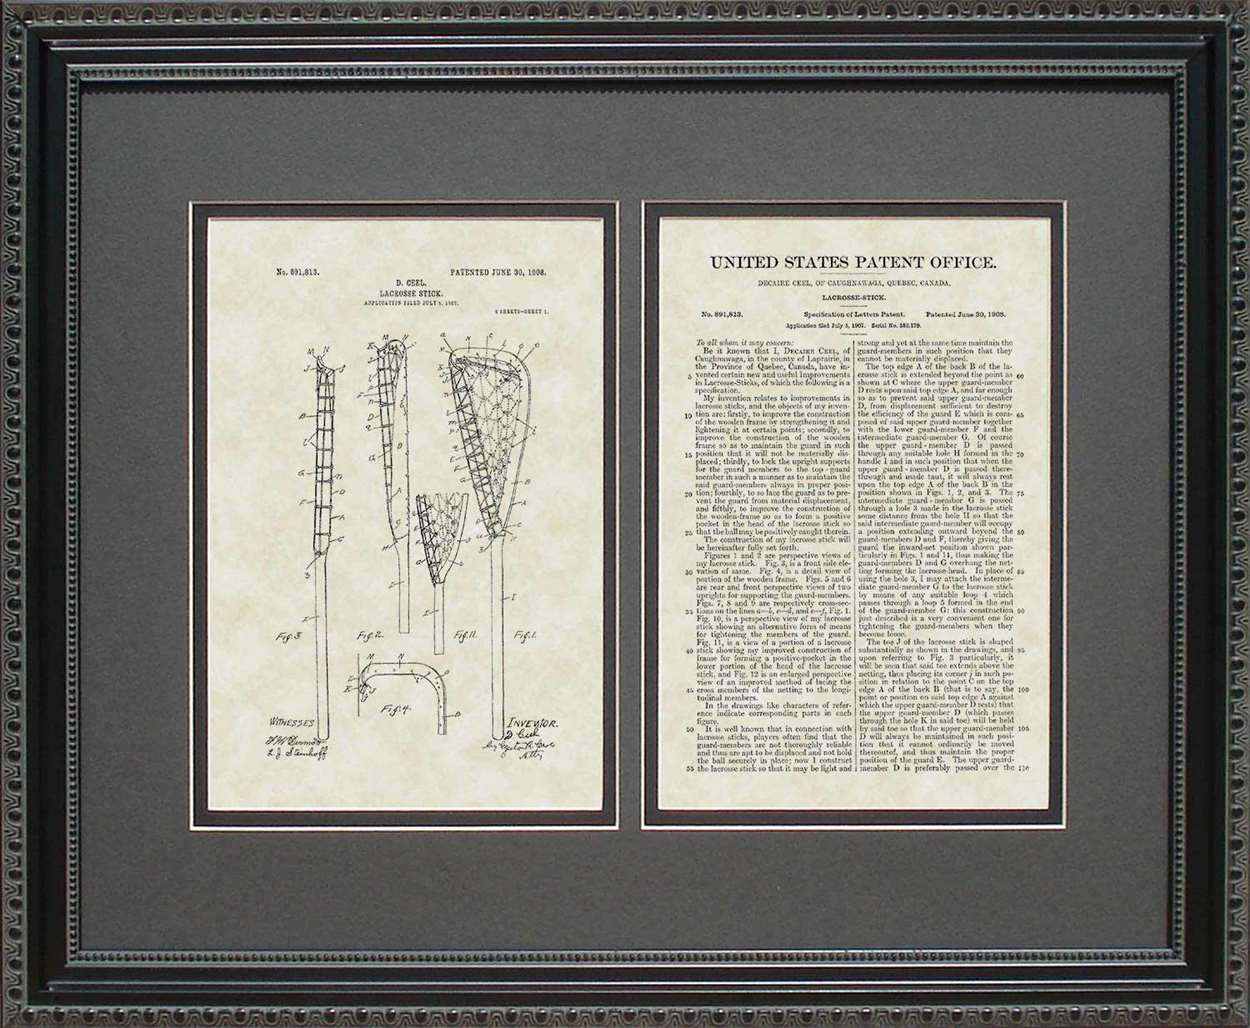 Lacrosse Stick Patent, Art & Copy, Ceel, 1908, 16x20